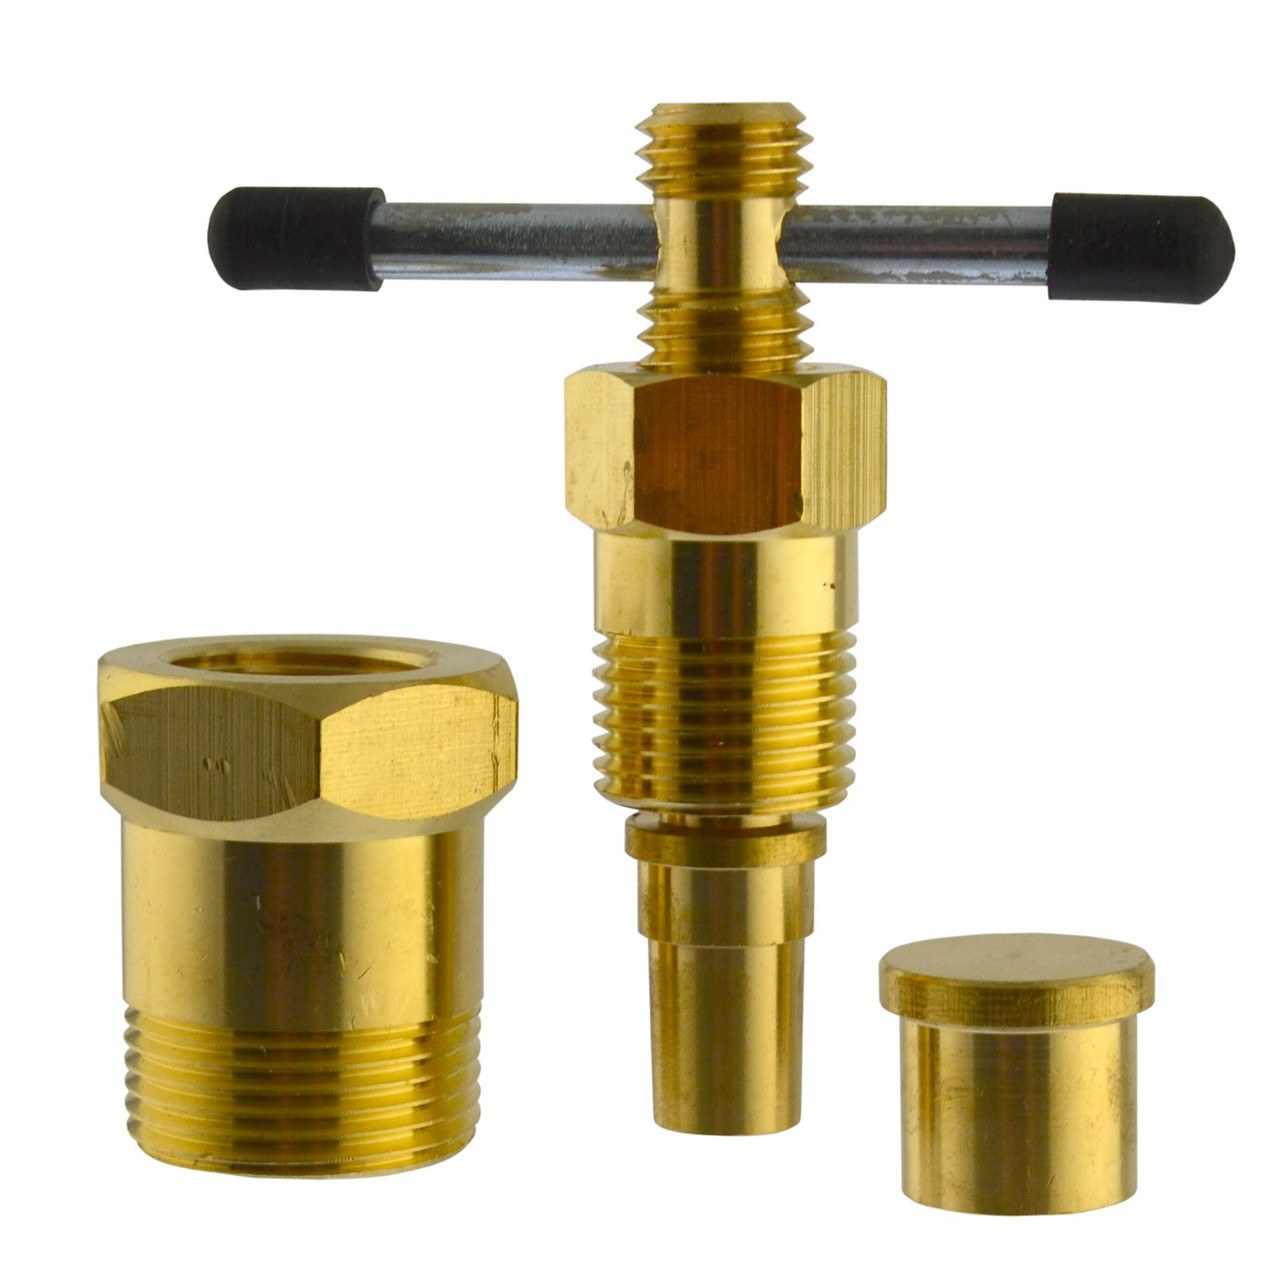 Olive Puller 15 /& 22mm Plumbing Hand Tools Brass DIY Extractor Pipe SIL316